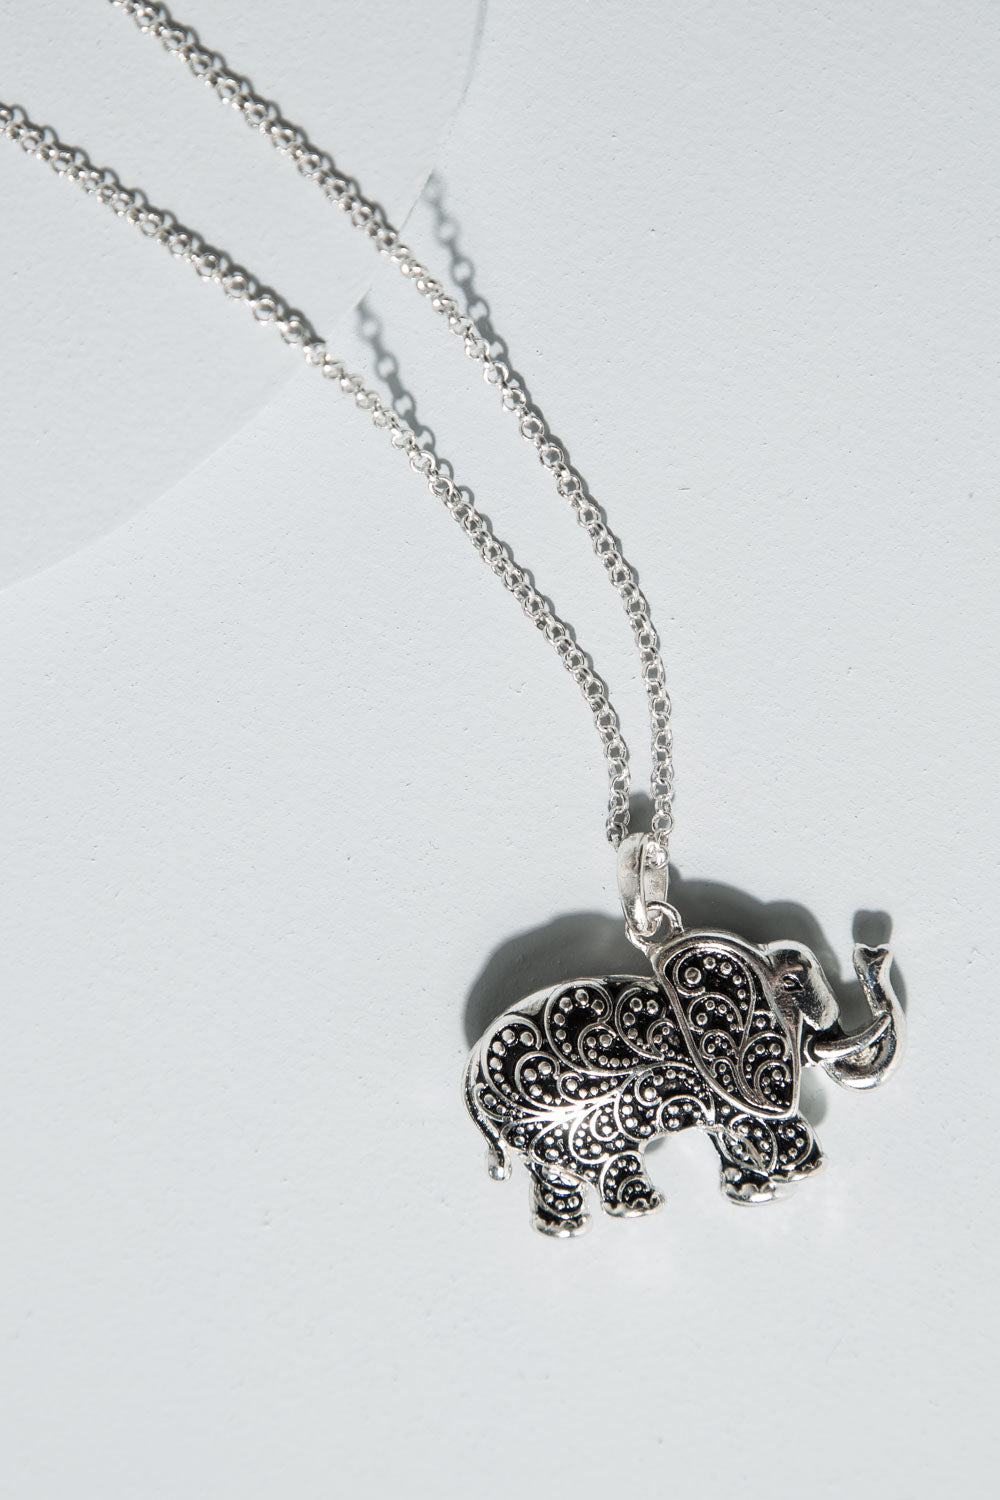 Type 2 Thinking Elephant Necklace